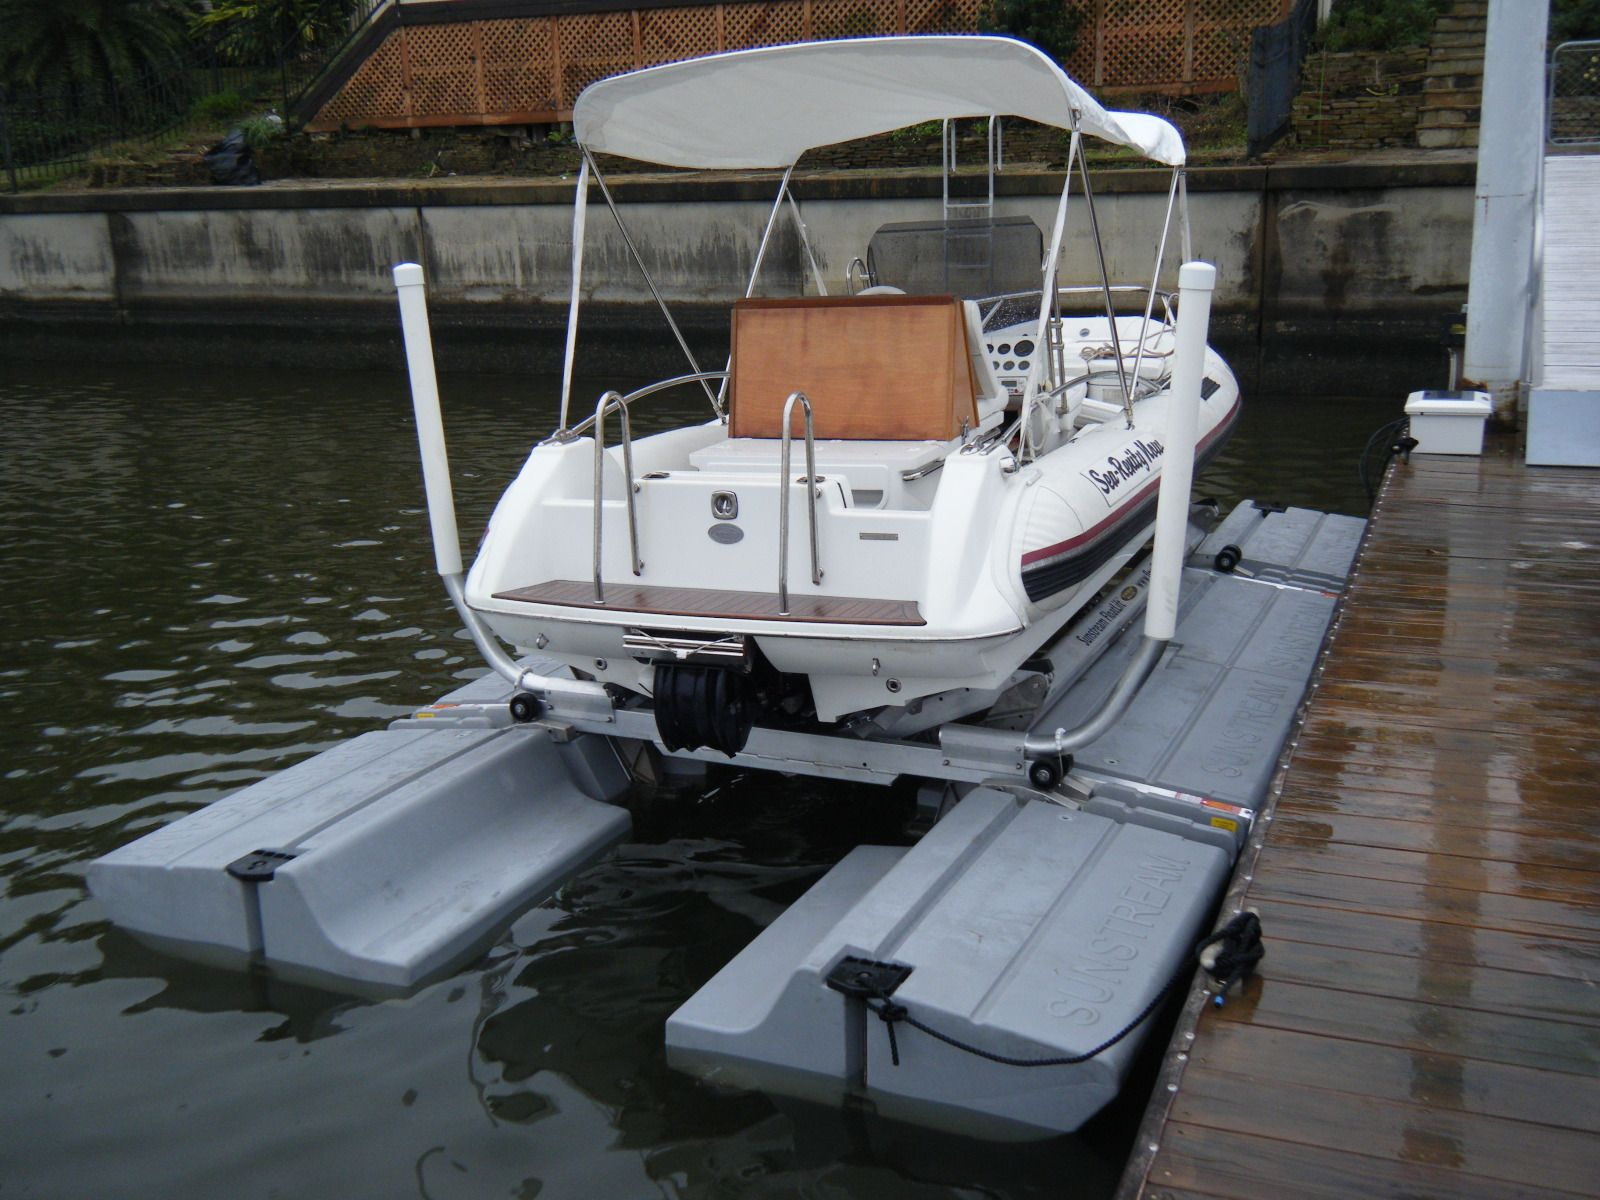 Sunstream Float Lift Floating Boat Boat Dock Boat Lift